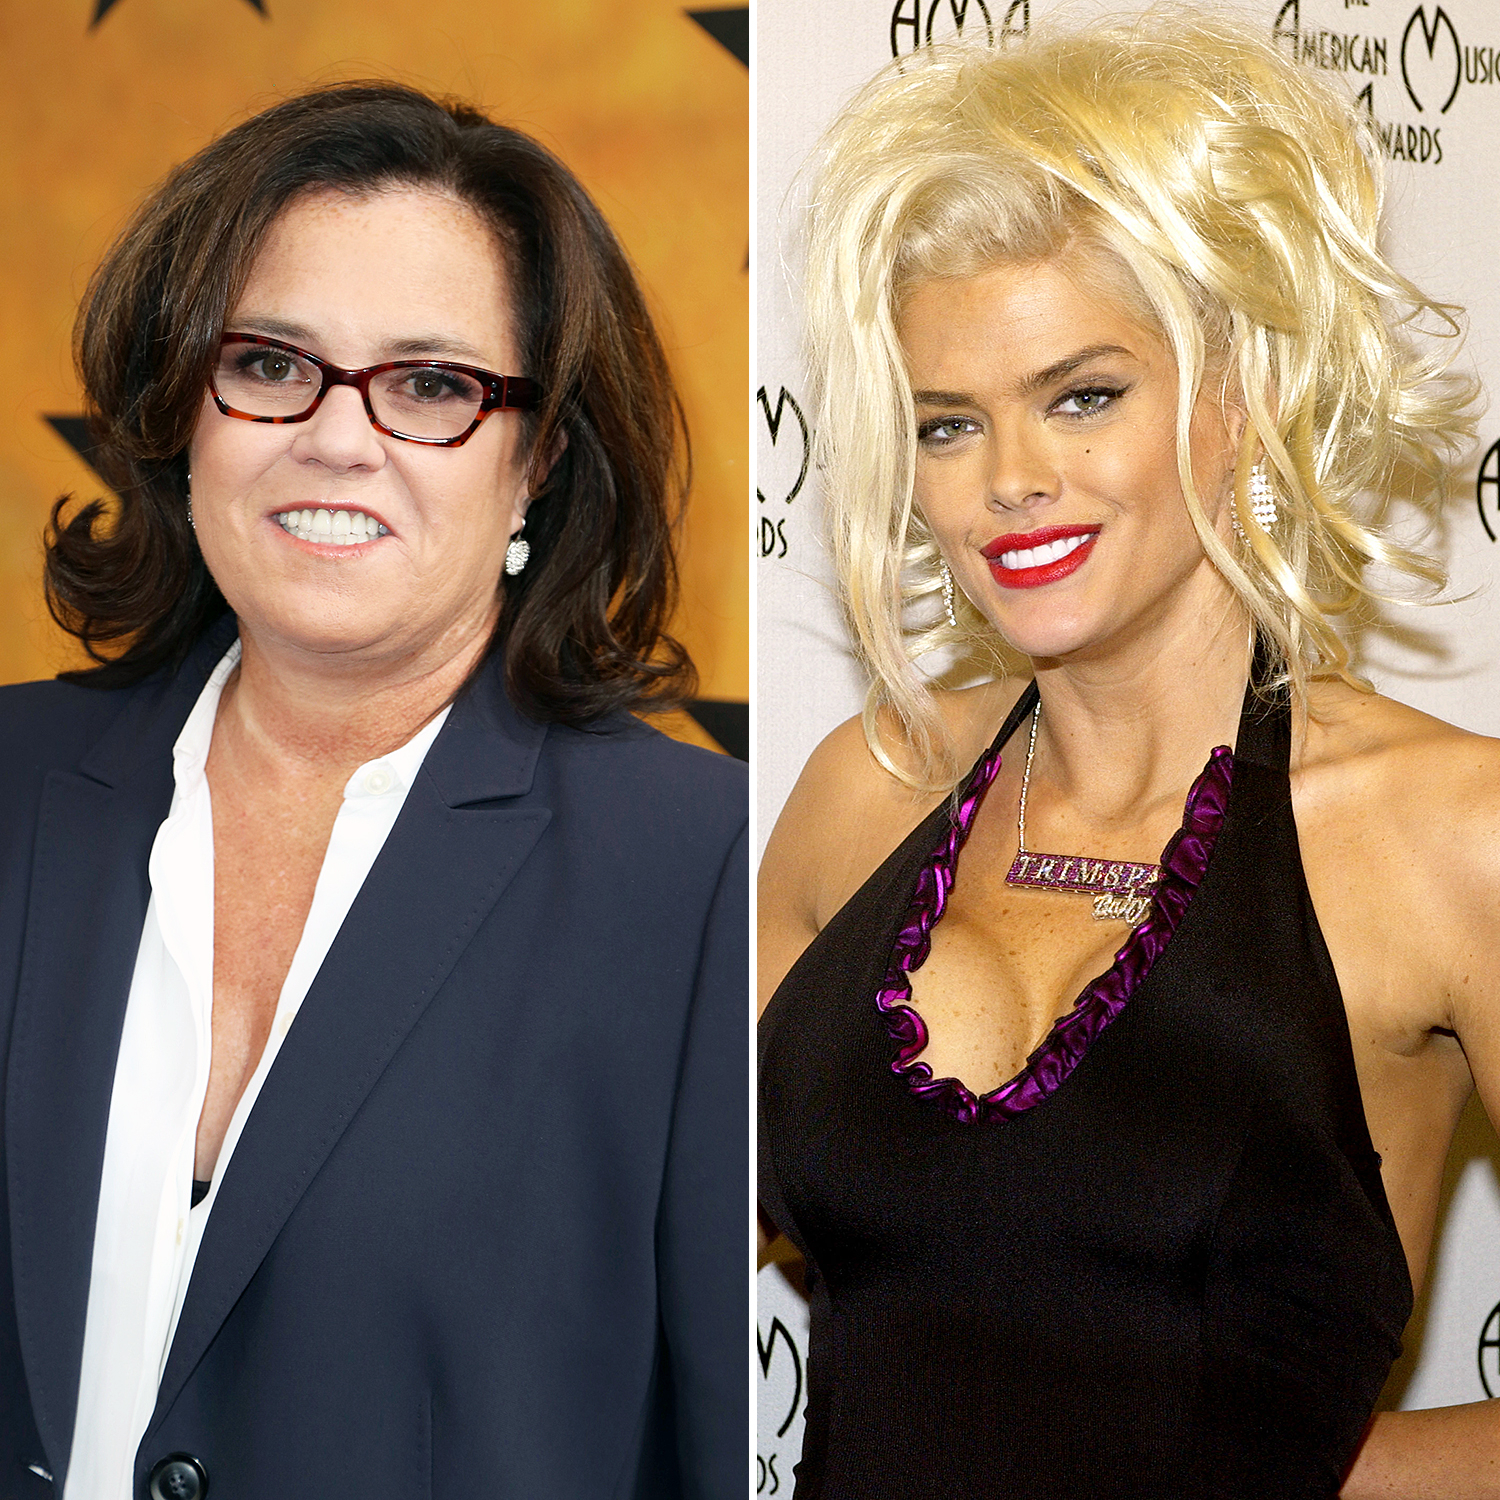 Rosie O'Donnell and Anna Nicole Smith